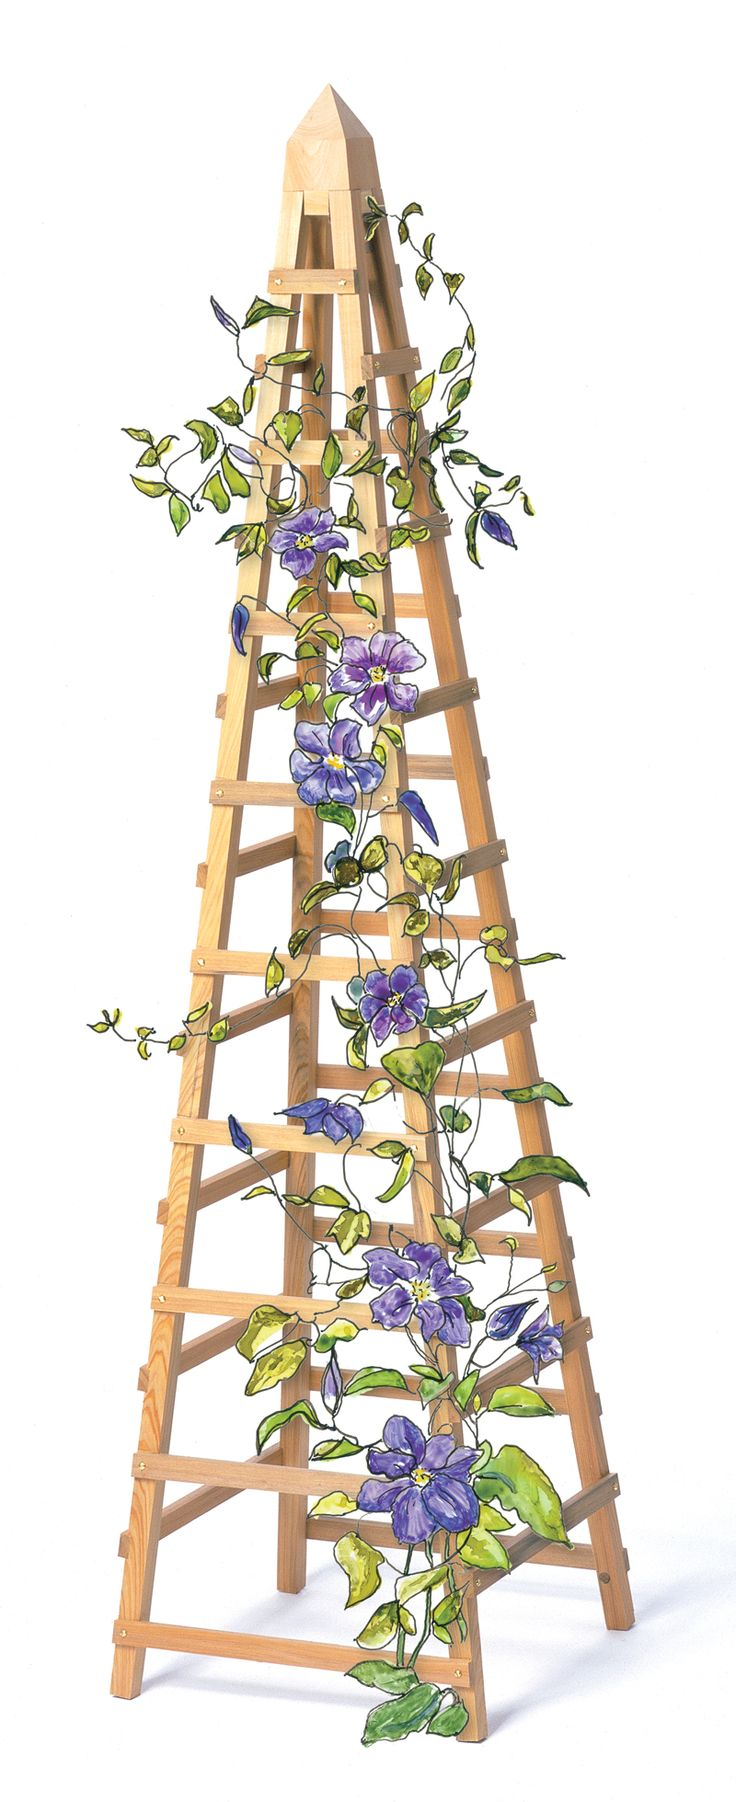 How to Build a Vine Trellis: DIY Garden Trellis Plans